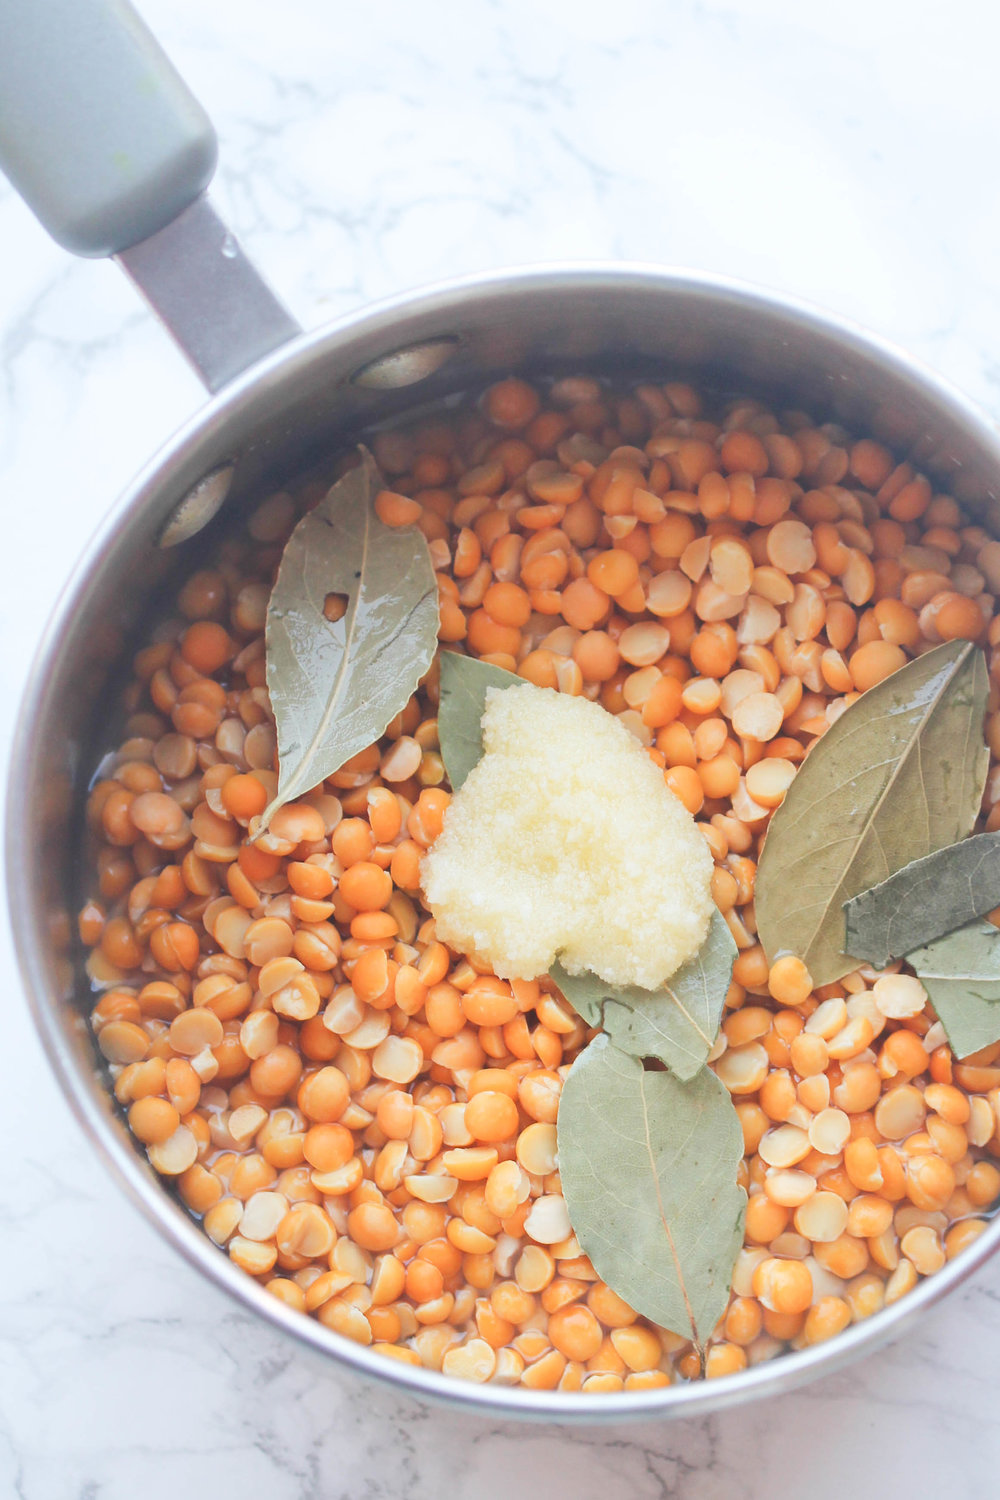 Basics of Cooking Legumes